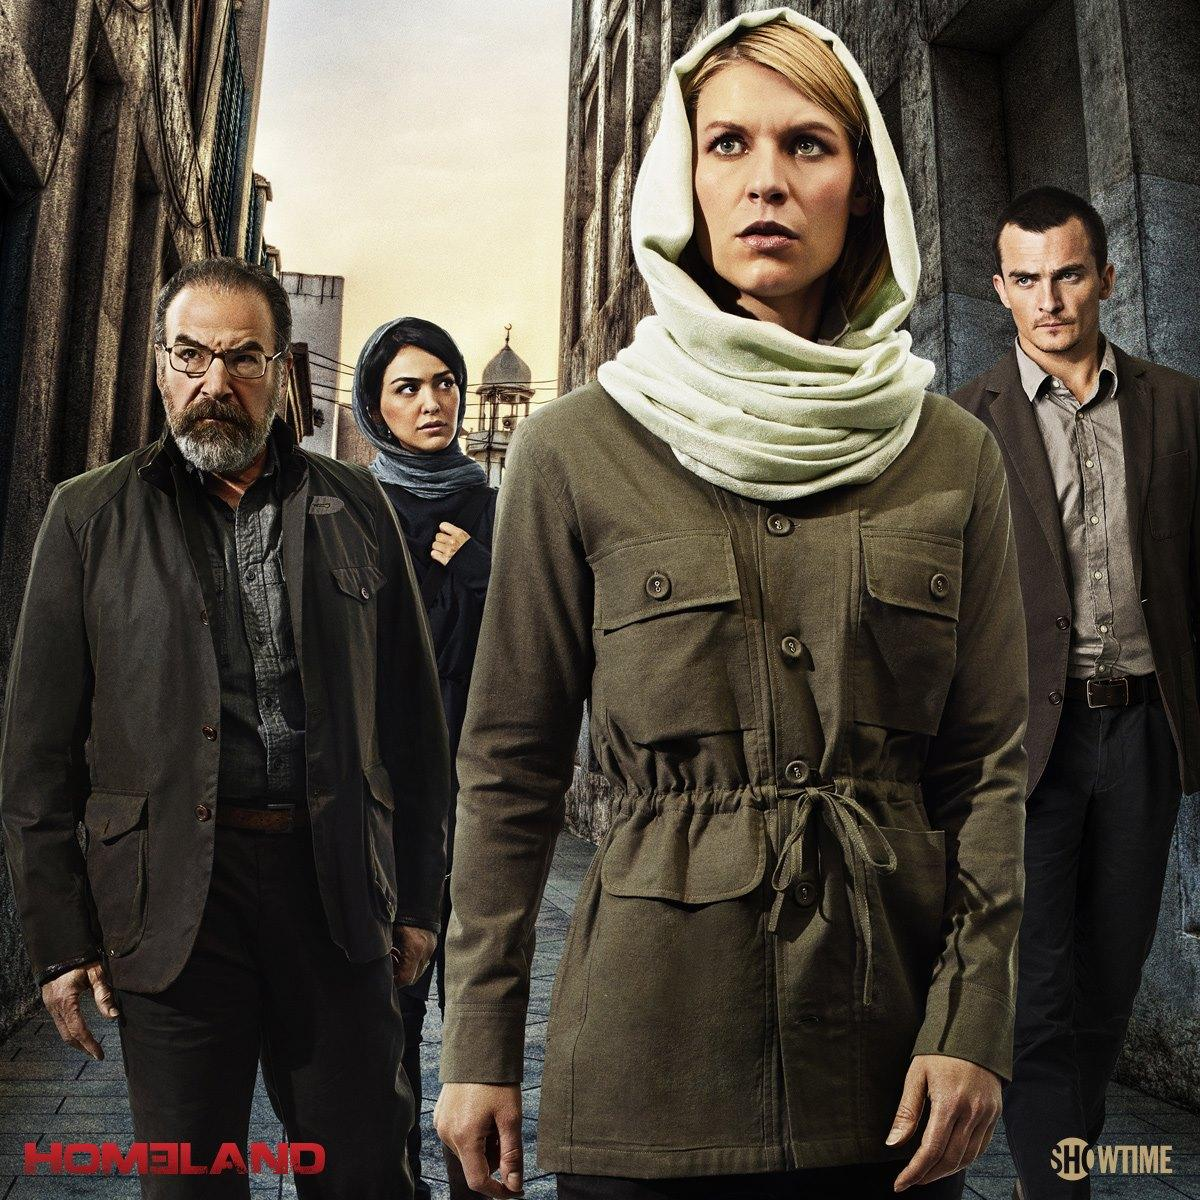 Just got confirmation from Langley: #Homeland will be back for a fifth season! http://t.co/HZ6KpFy1TG